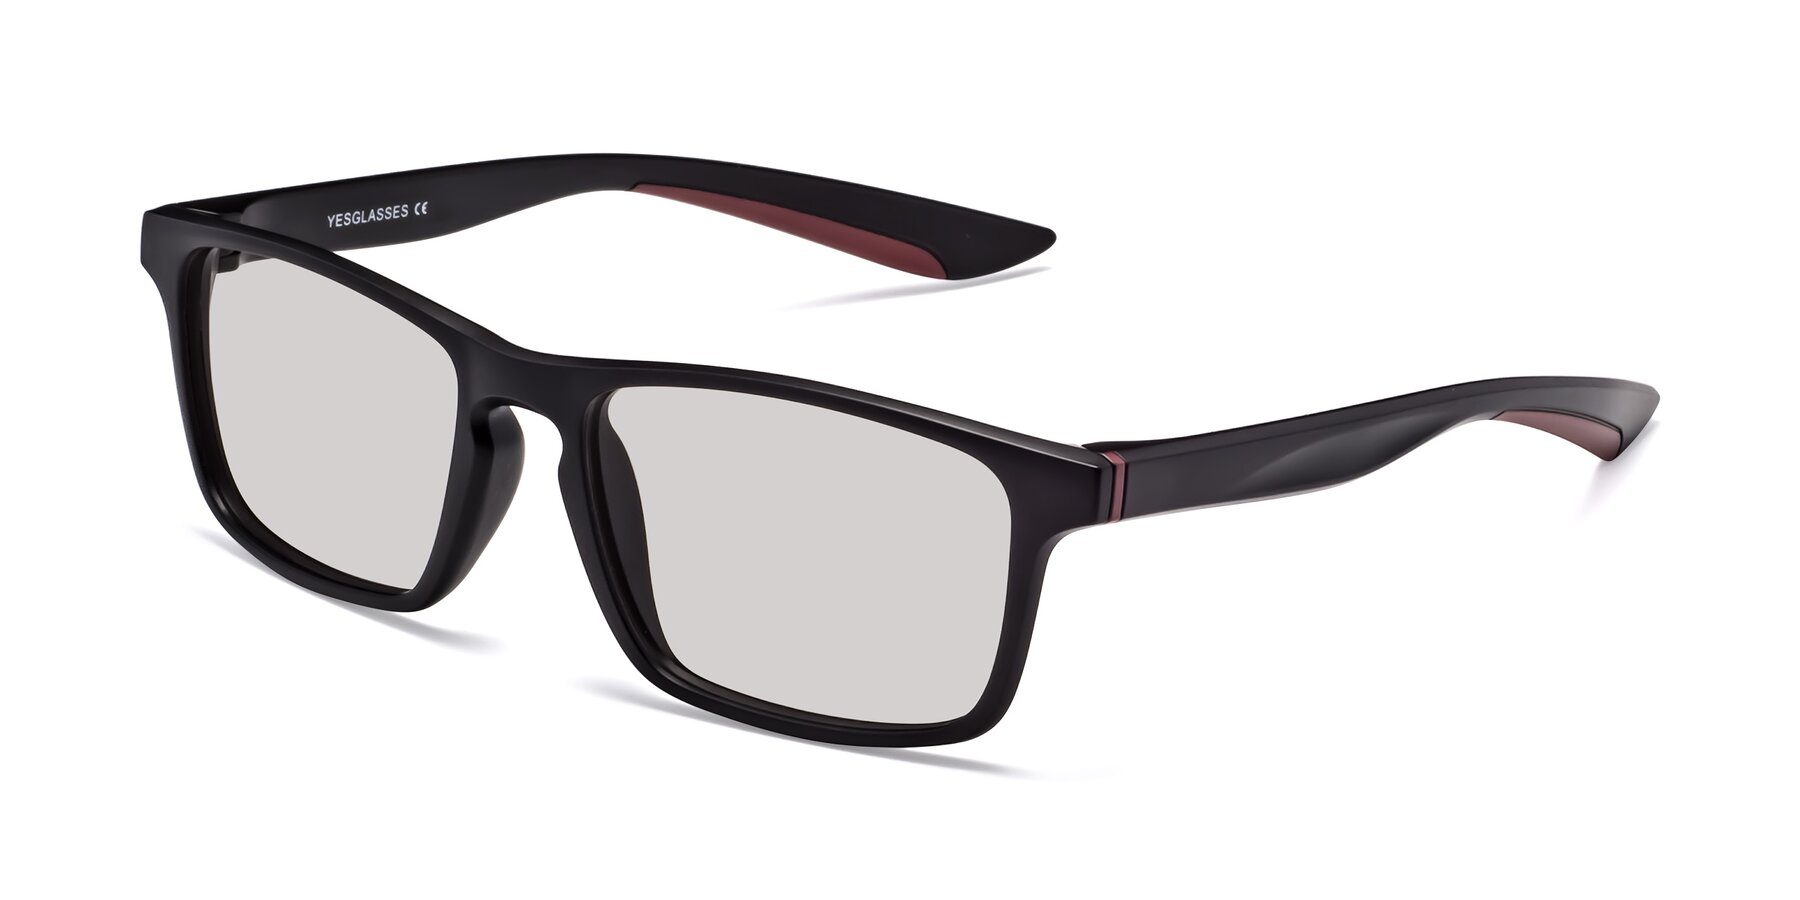 Angle of Passion in Matte Black-Wine with Light Gray Tinted Lenses